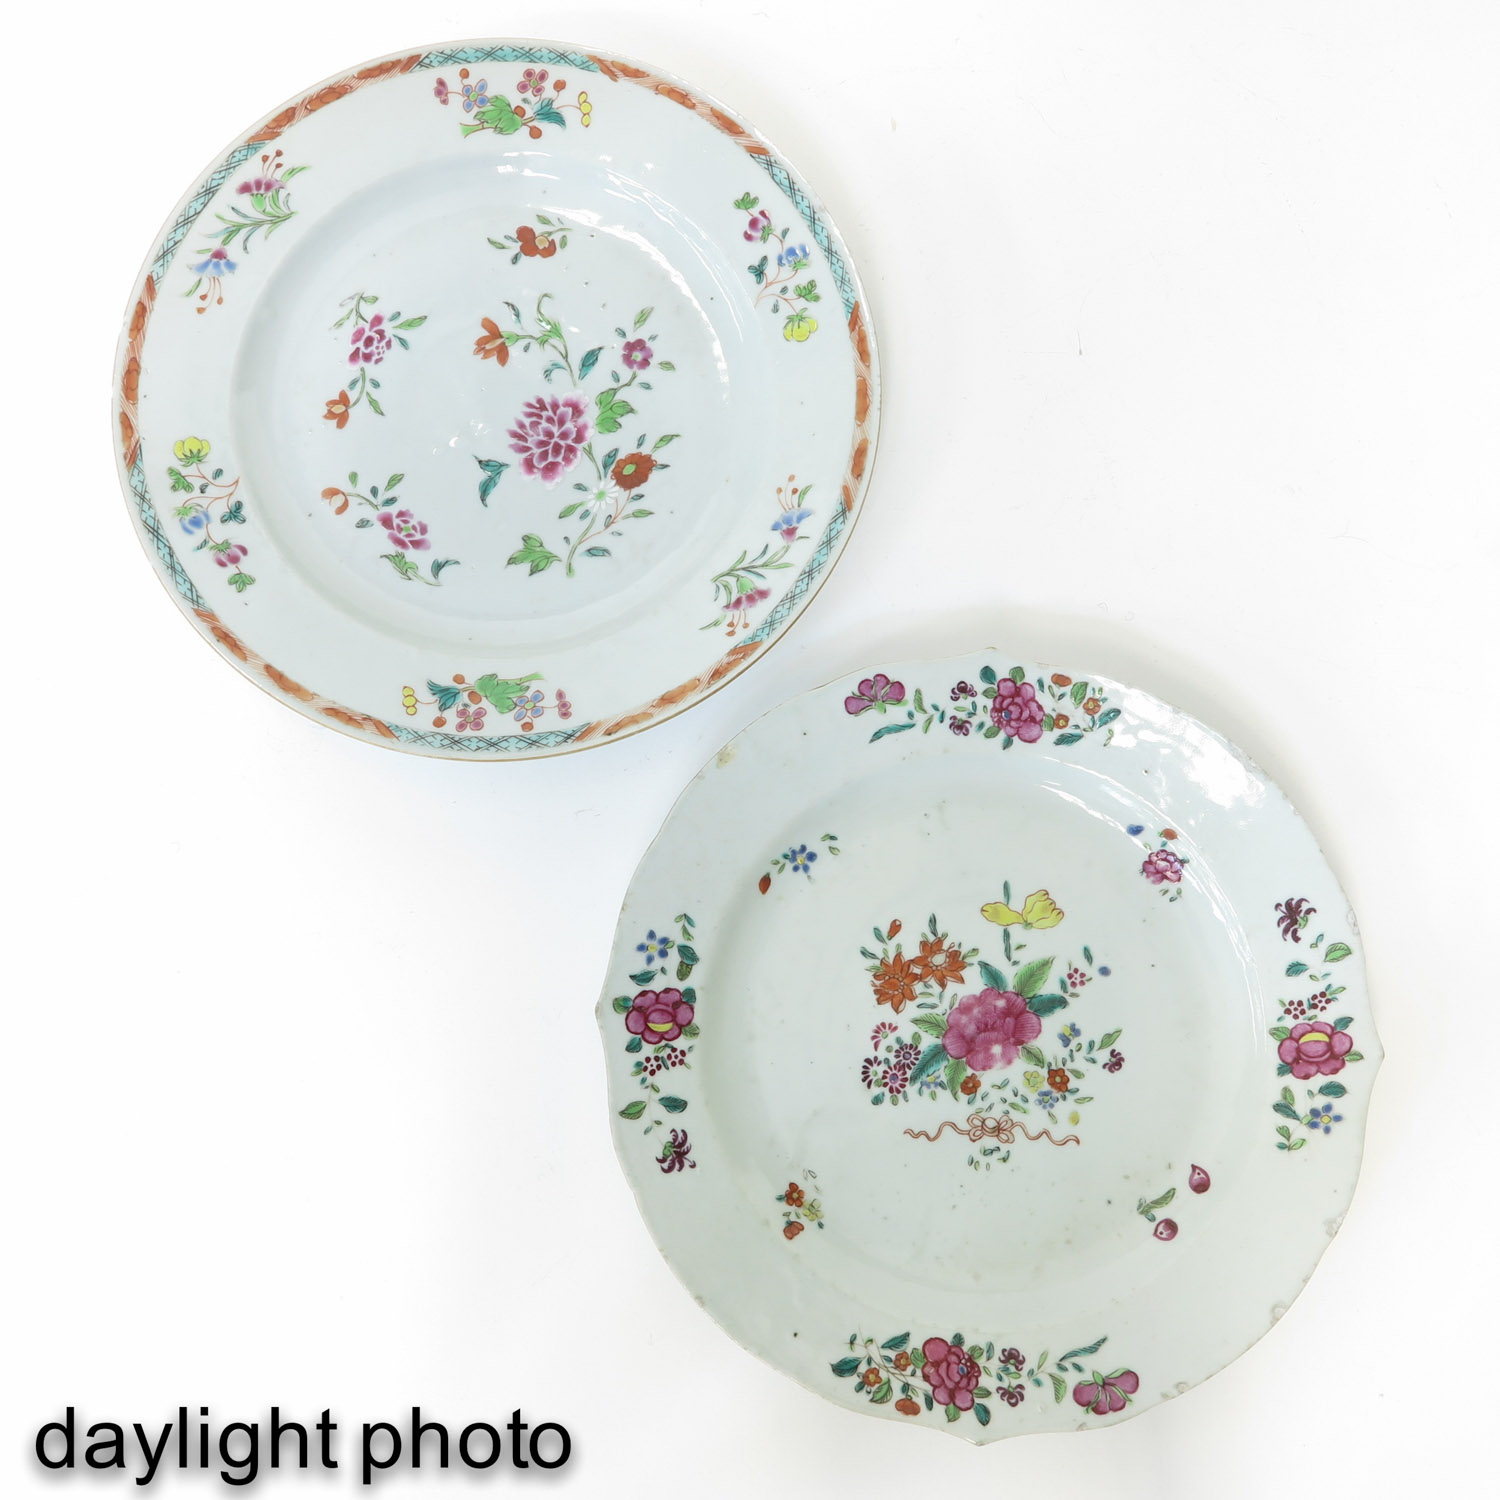 A Series of Famille Rose Plates - Image 9 of 10